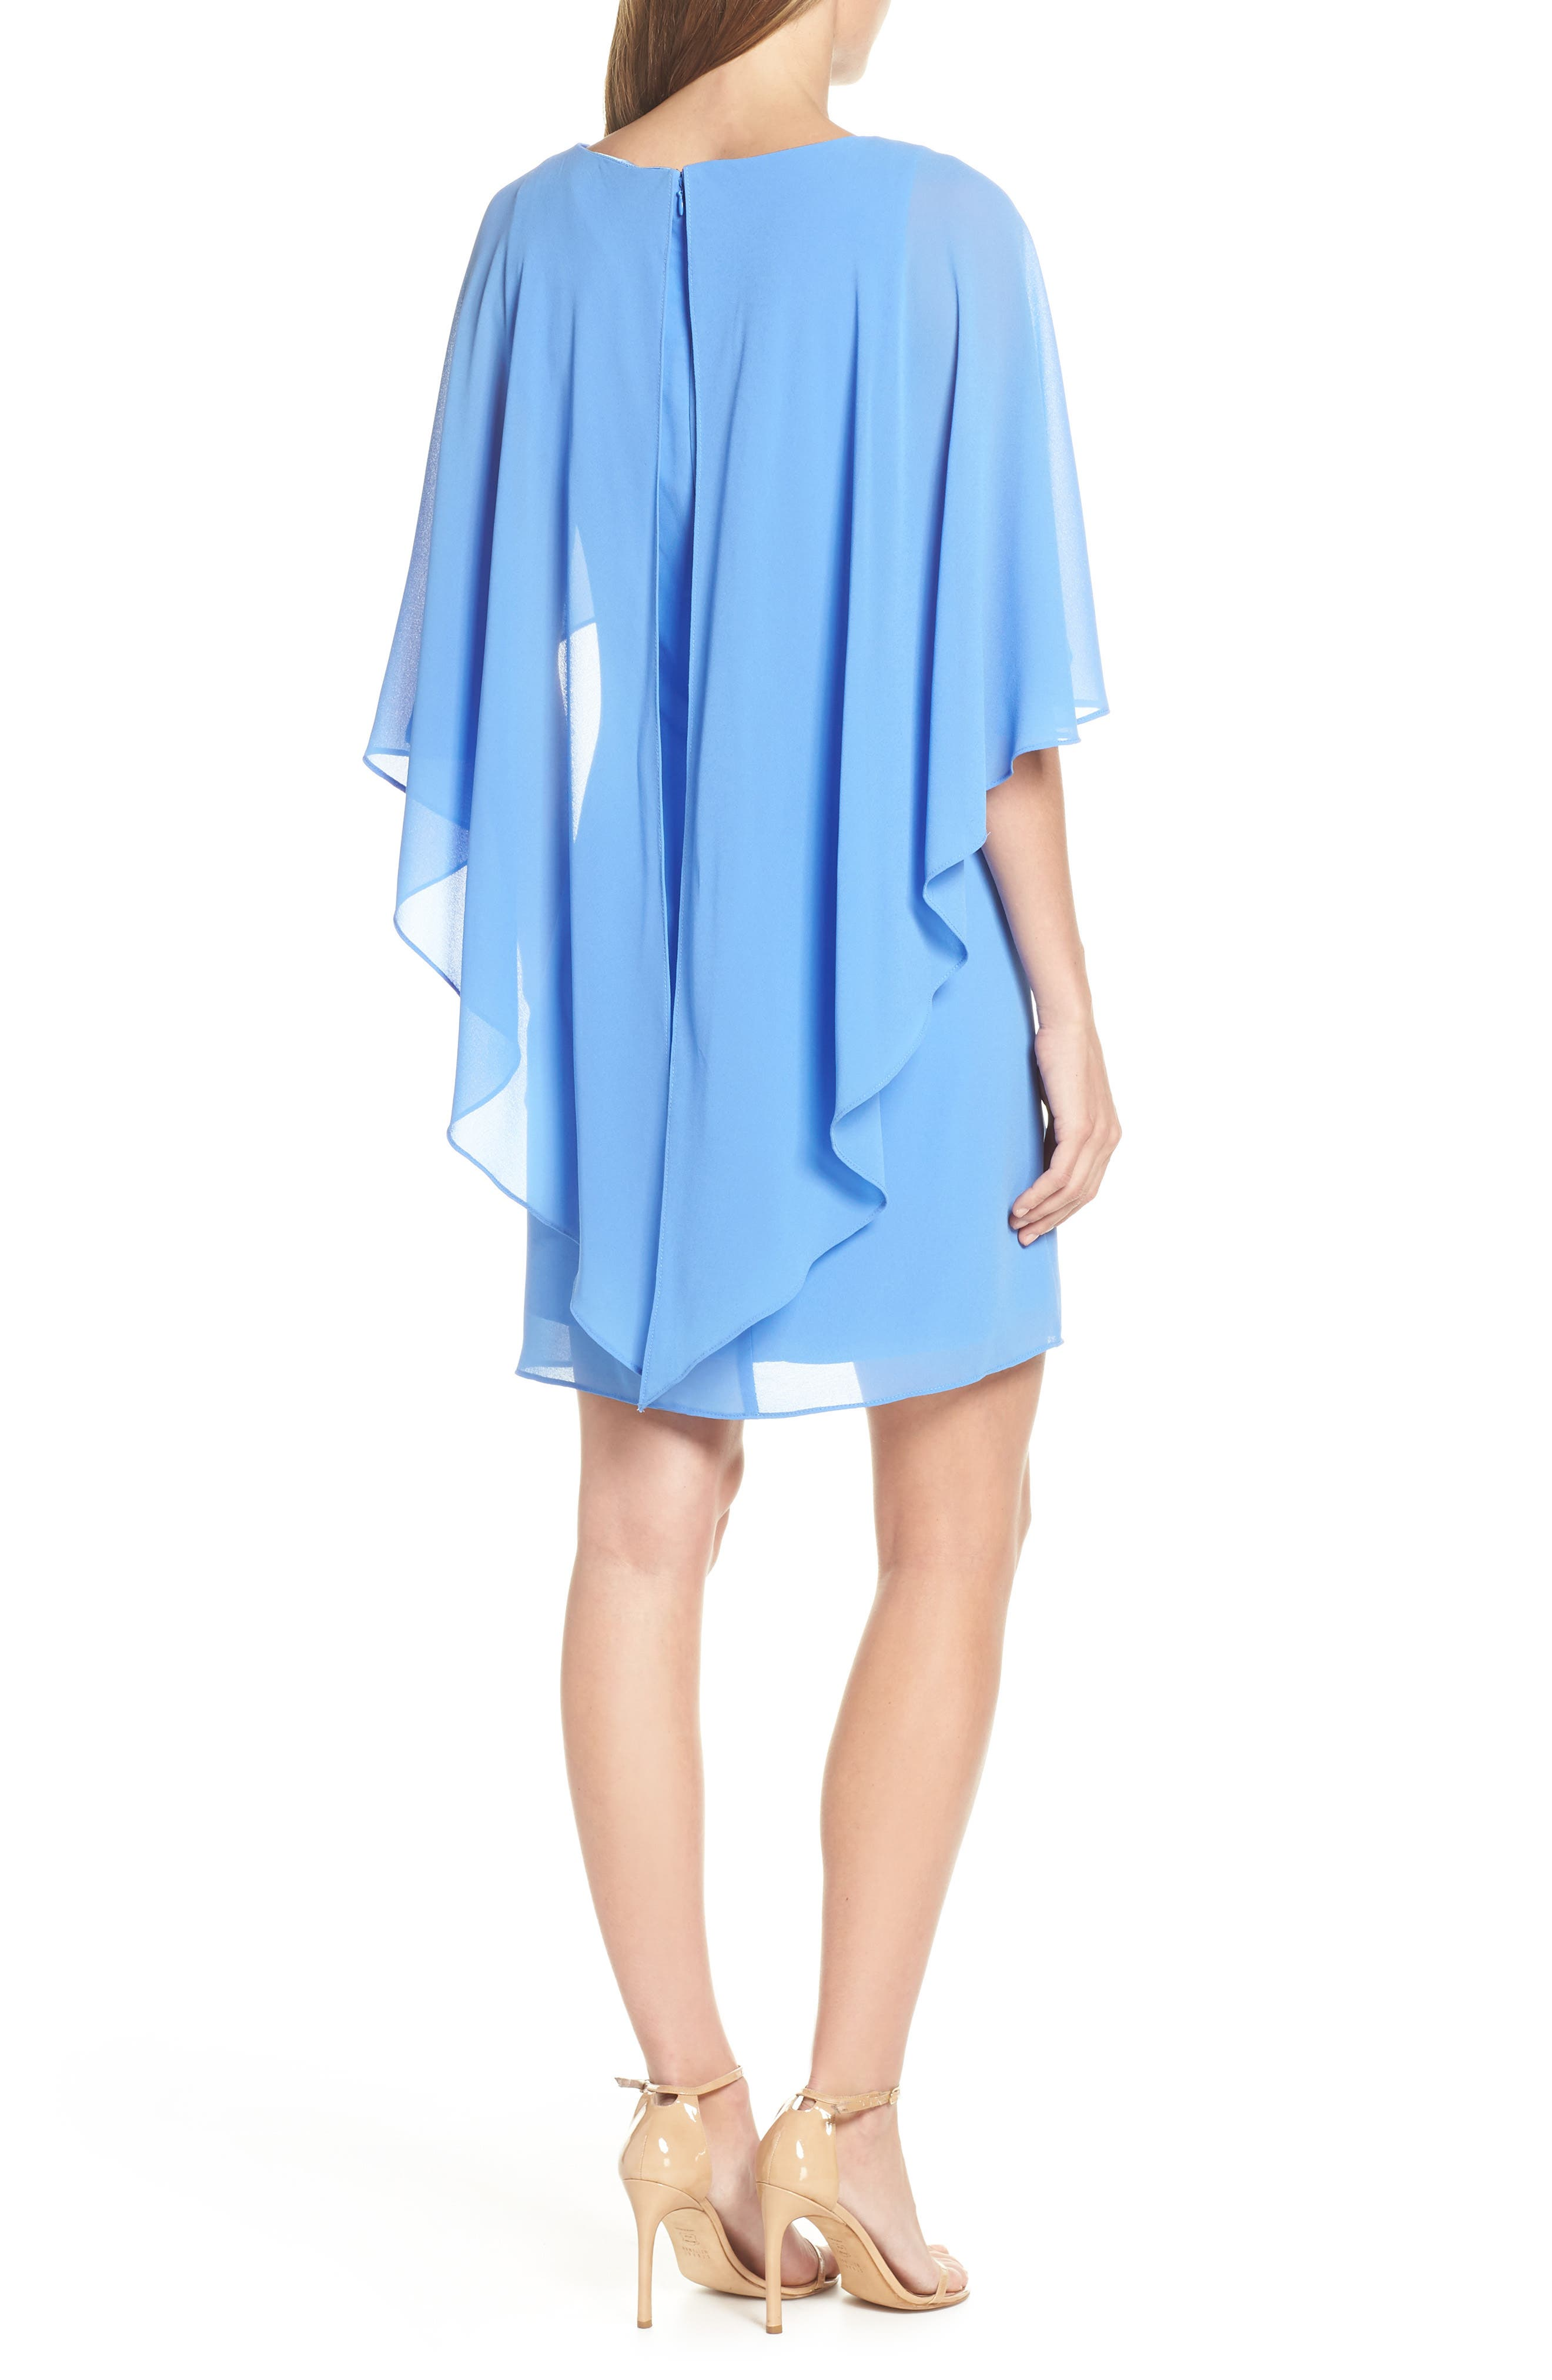 VINCE CAMUTO, Cape Overlay Dress, Alternate thumbnail 2, color, PERIWINKLE